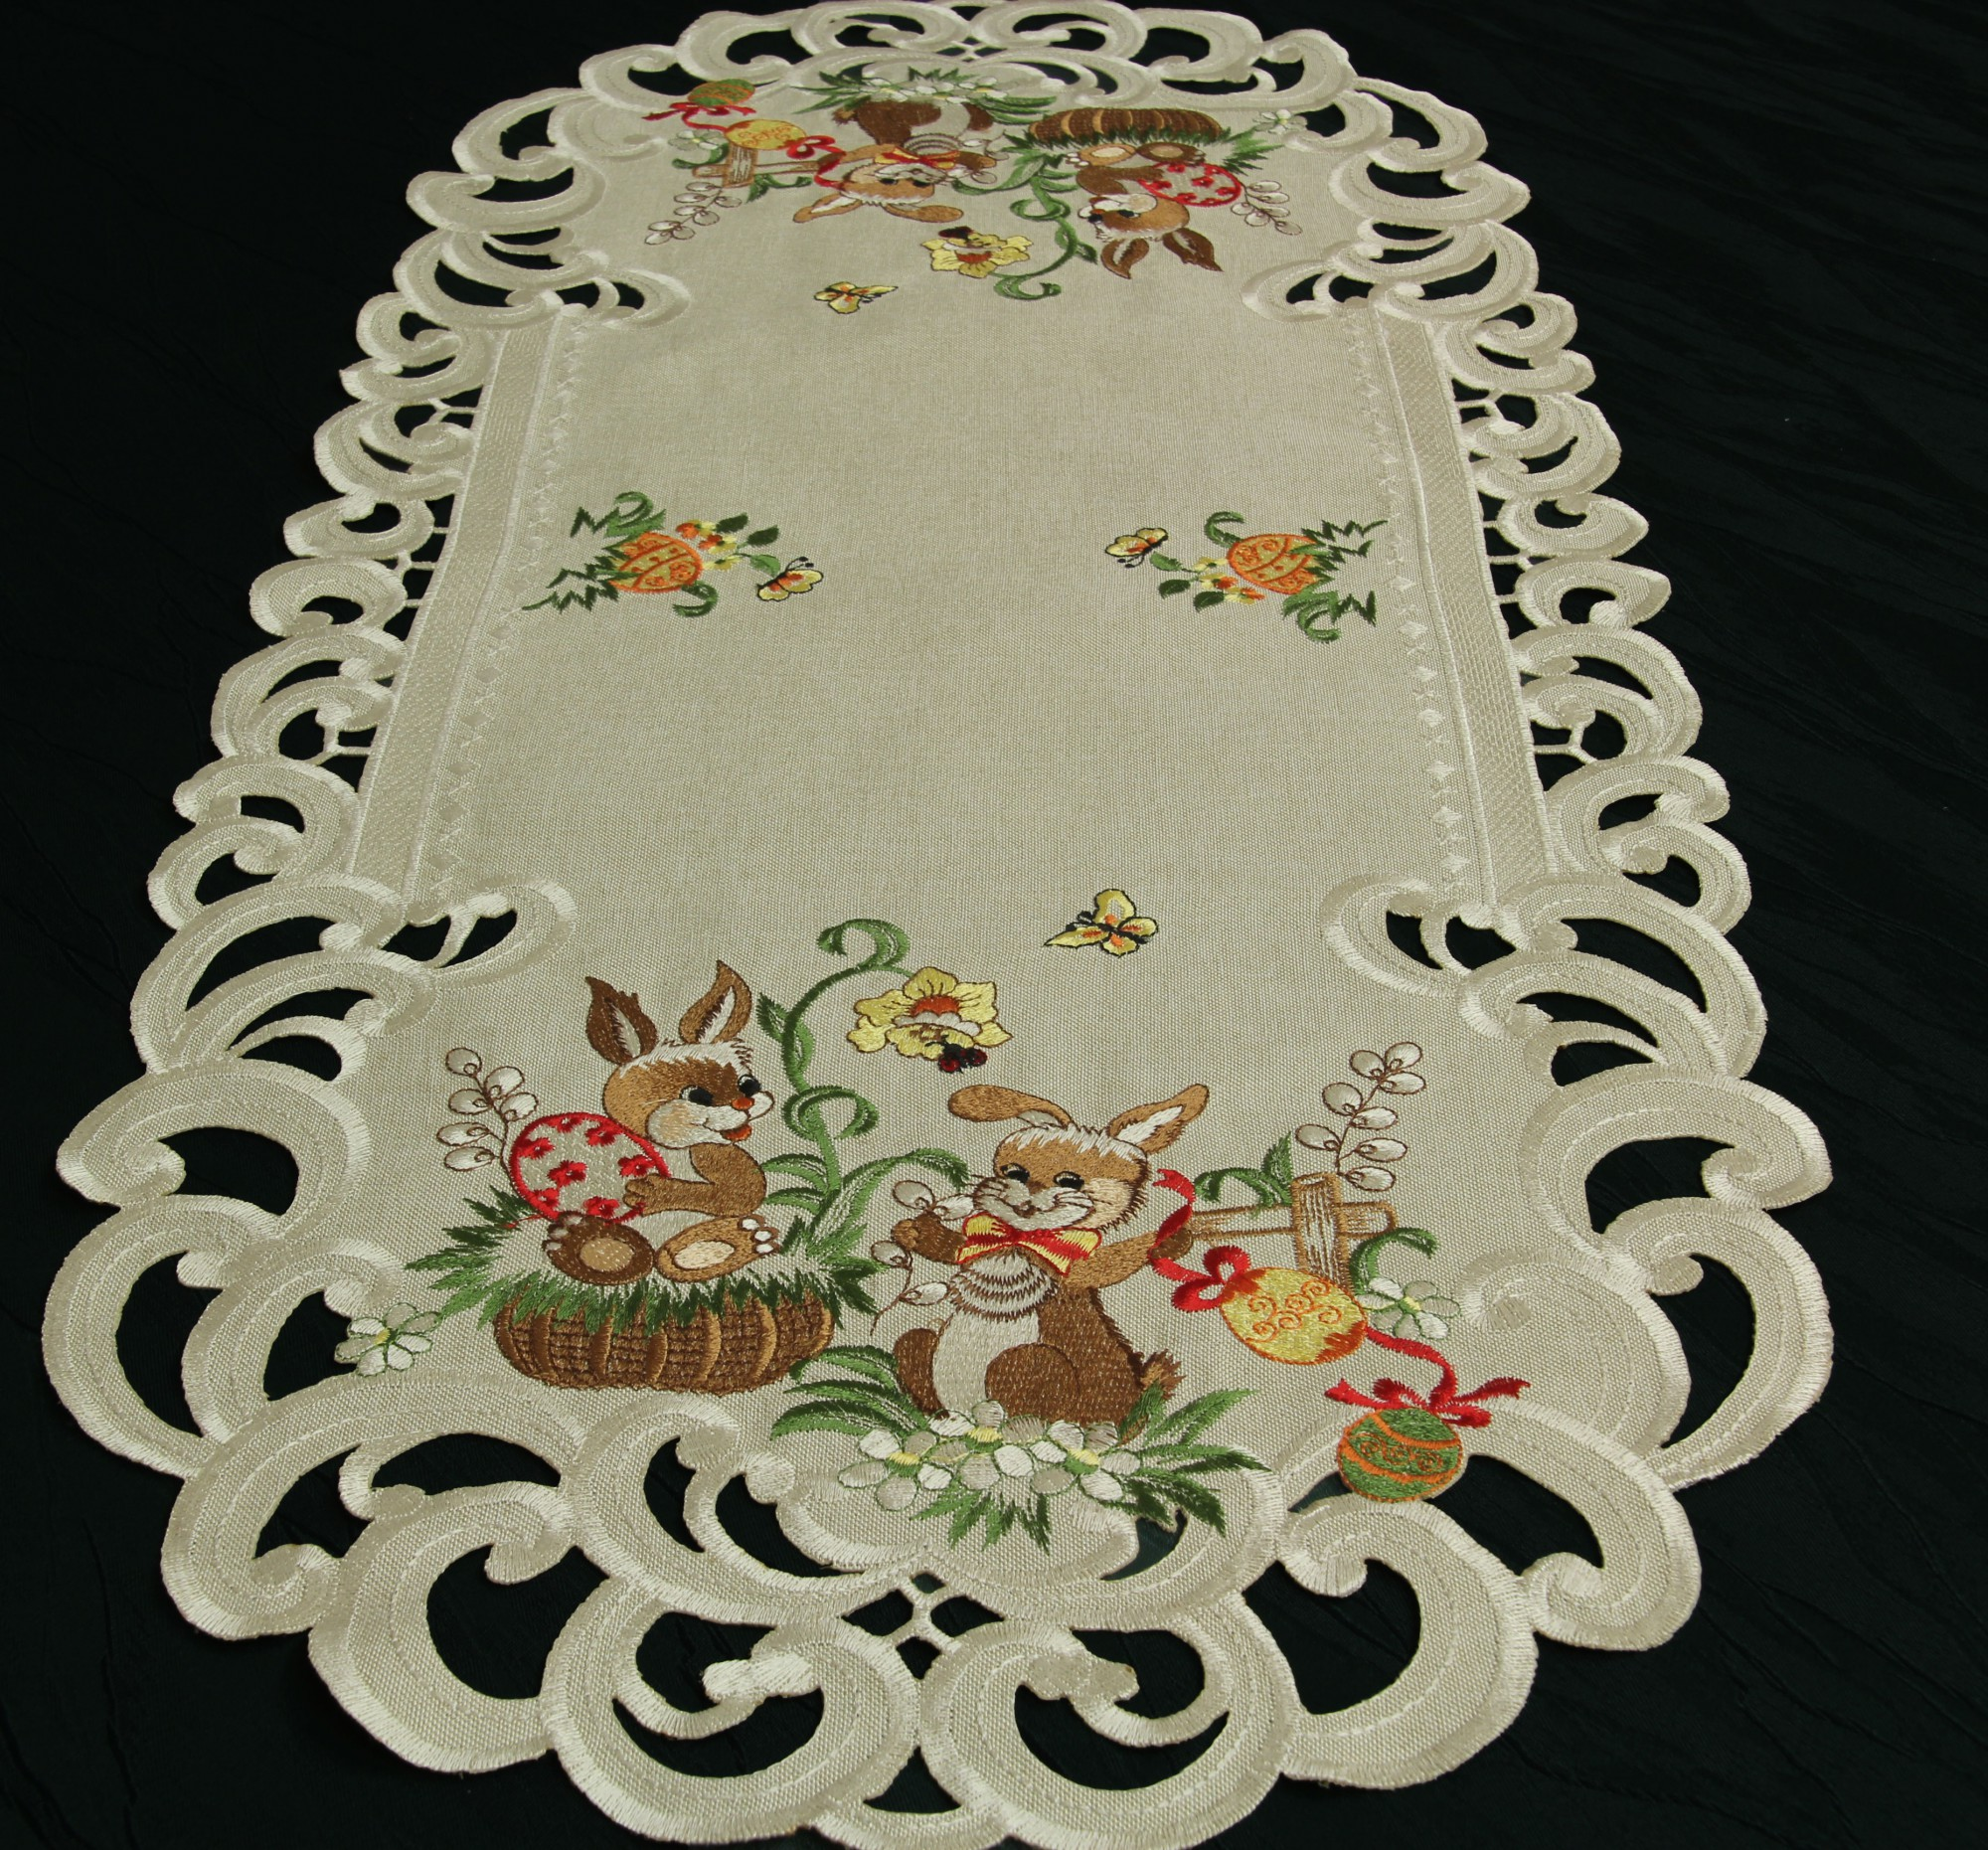 Easter Table runner Doily Tablecloth Linen look Beige  : Ostern06 2276 from www.ebay.com size 2000 x 1861 jpeg 1050kB